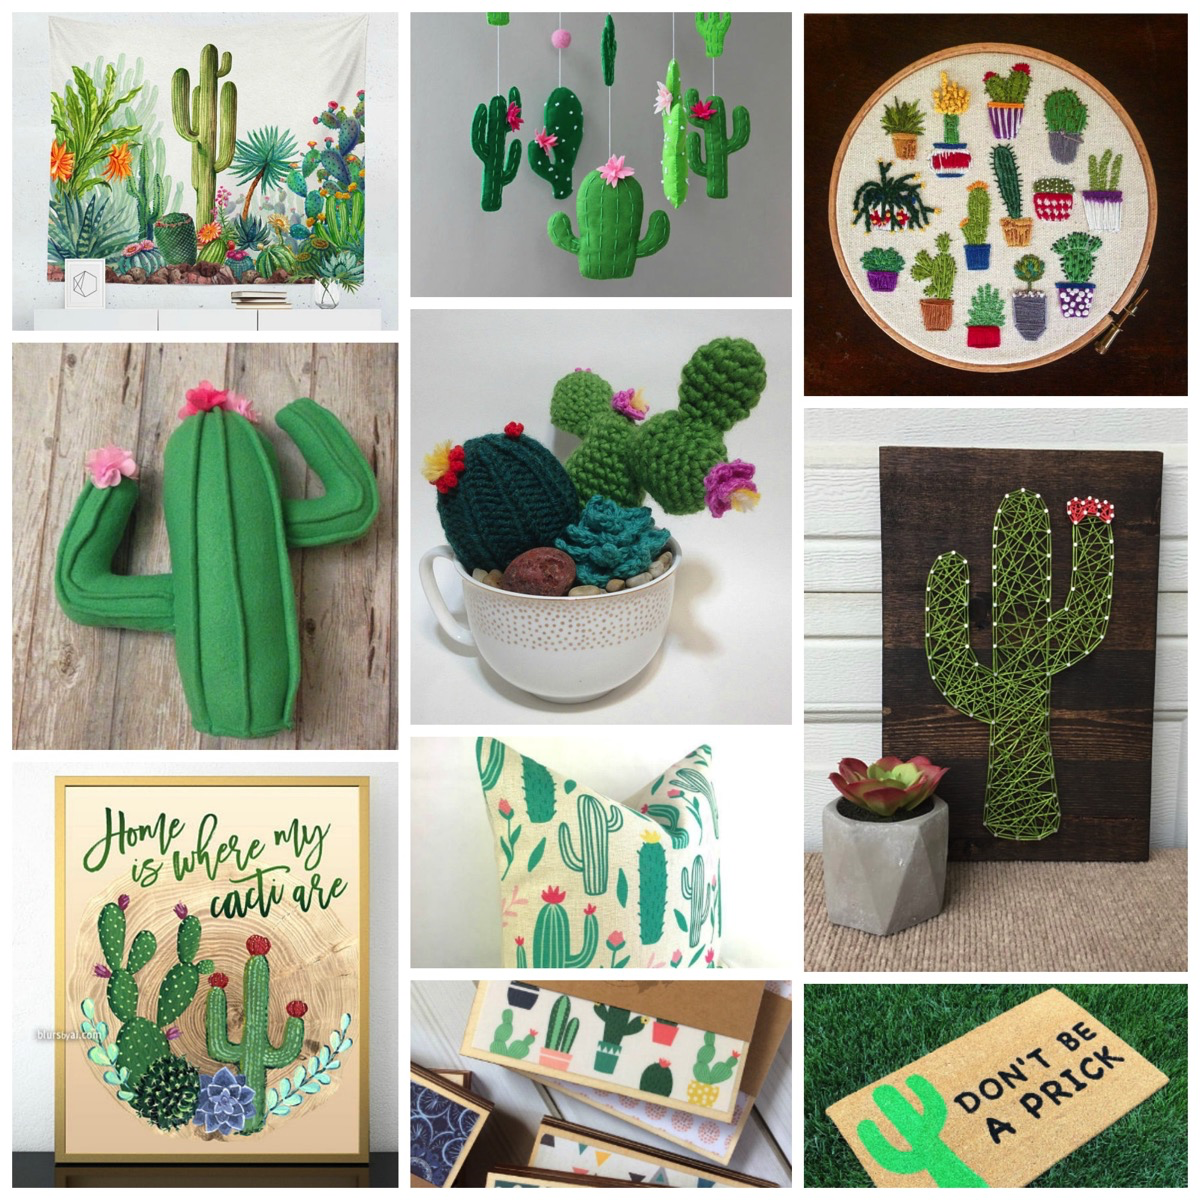 Top 10: Most Unique Cactus and Succulent Home Decor Gifts Online